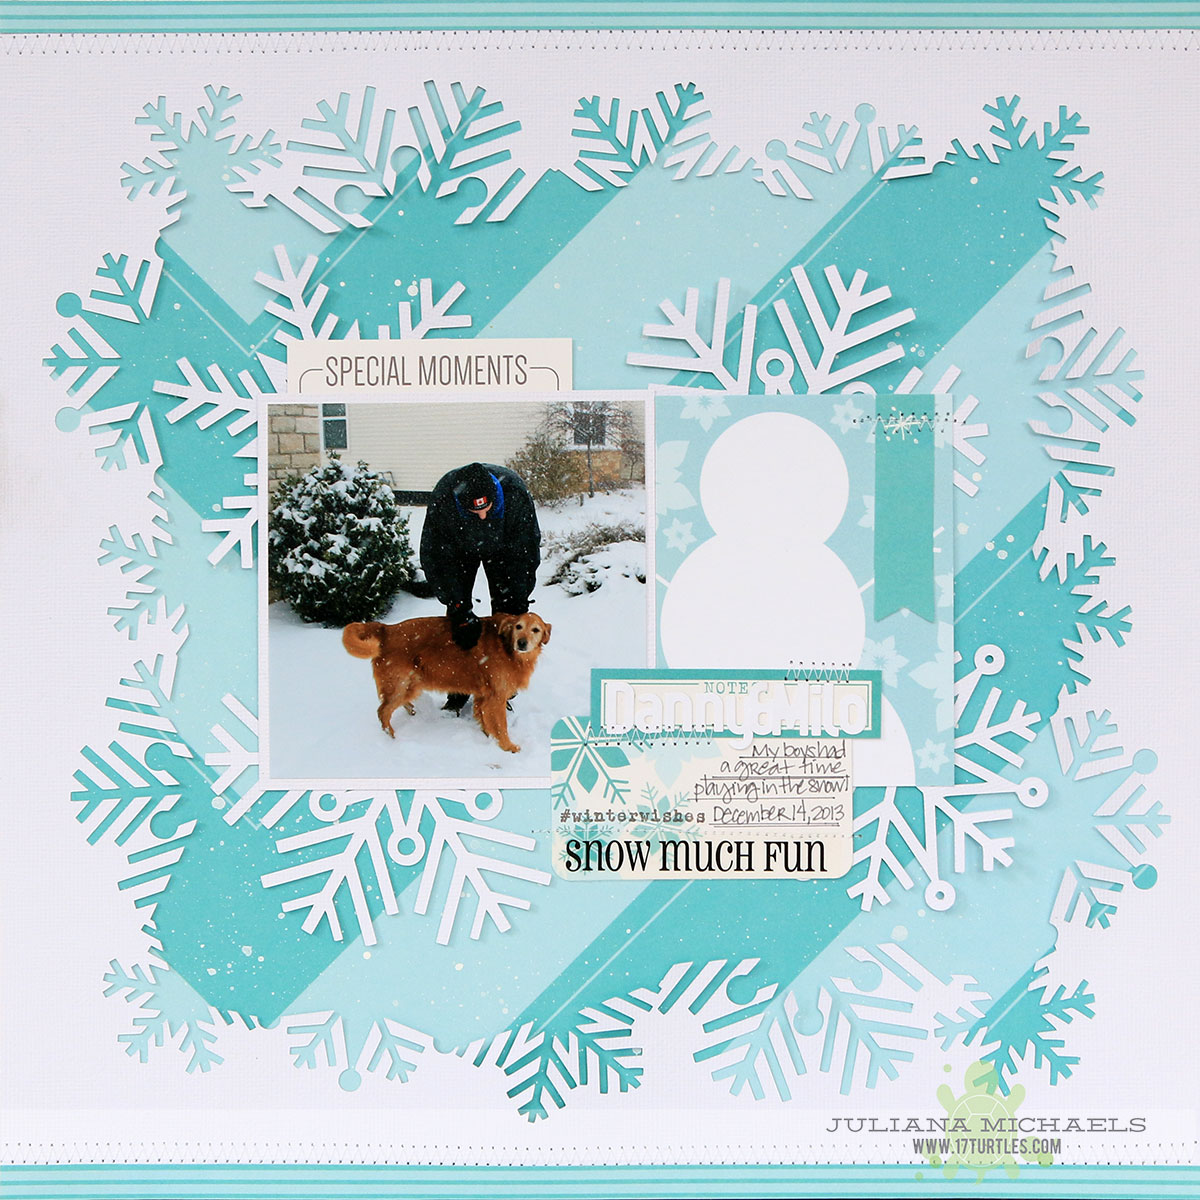 http://1.bp.blogspot.com/-3oZFDSGpjIA/VLrnV_je4iI/AAAAAAAATS8/FrvYY0j19Cw/s1600/Snow_Much_Fun_Scrapbook_Page_Juliana_Michaels_17turtles_Digital_Cut_Files_01.jpg